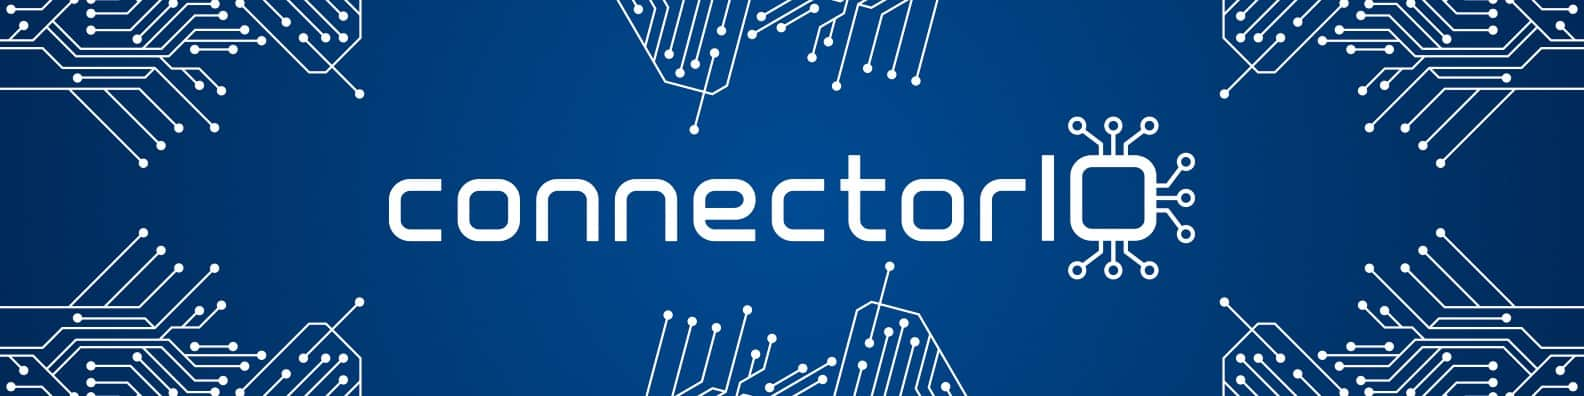 Connectorio label